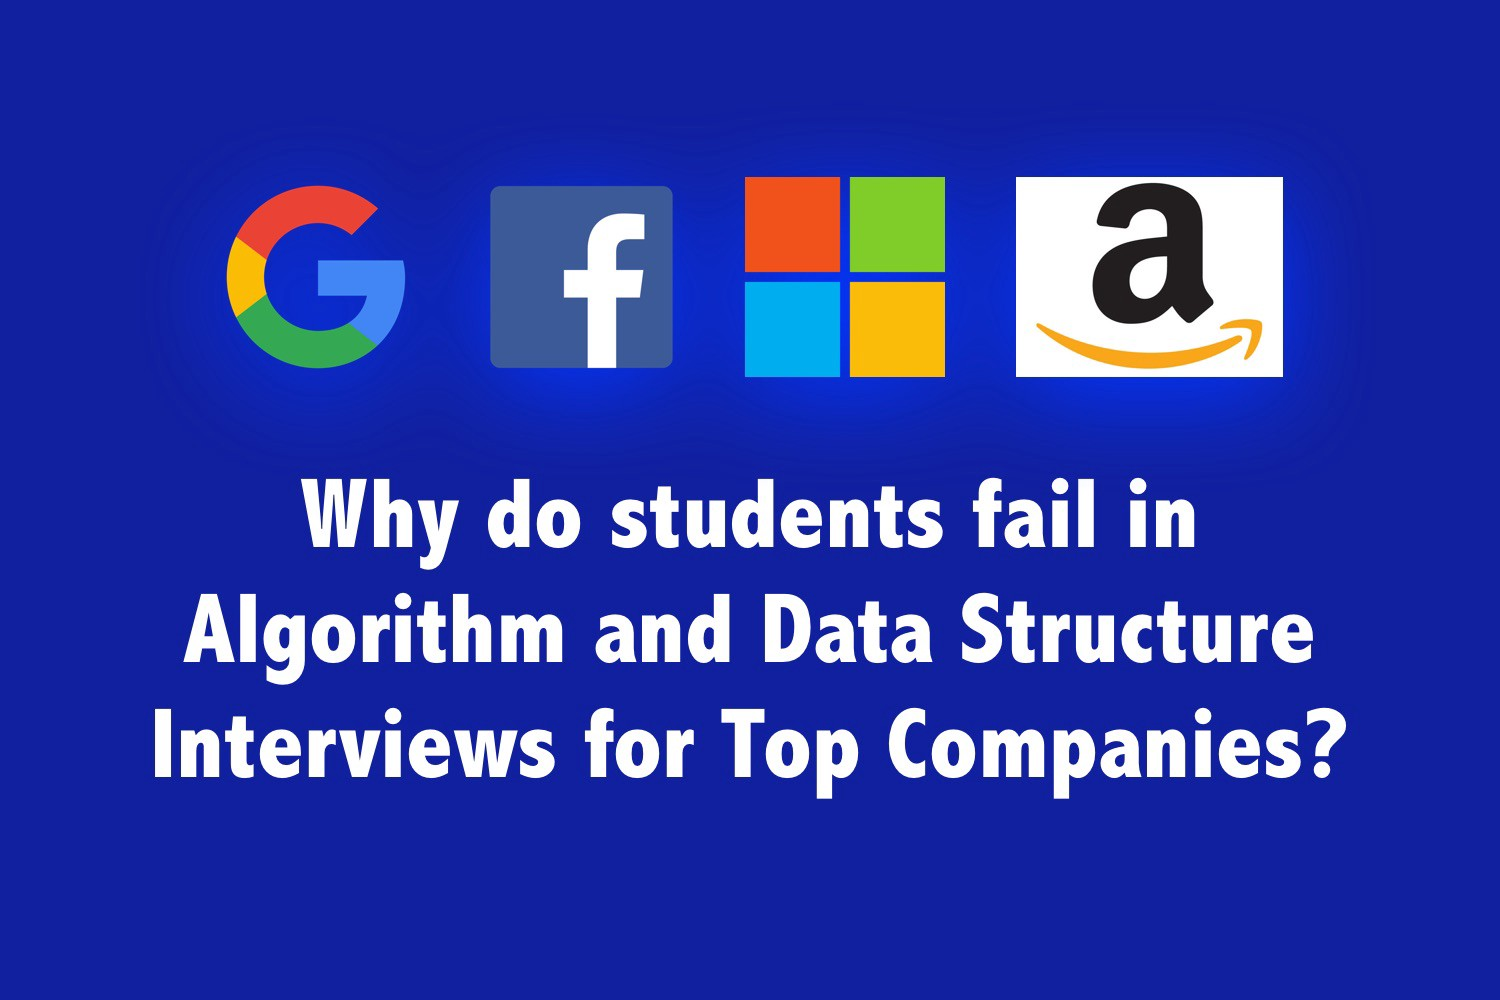 Why do students fail in Algorithms and Data Structure Interviews for Top Companies?